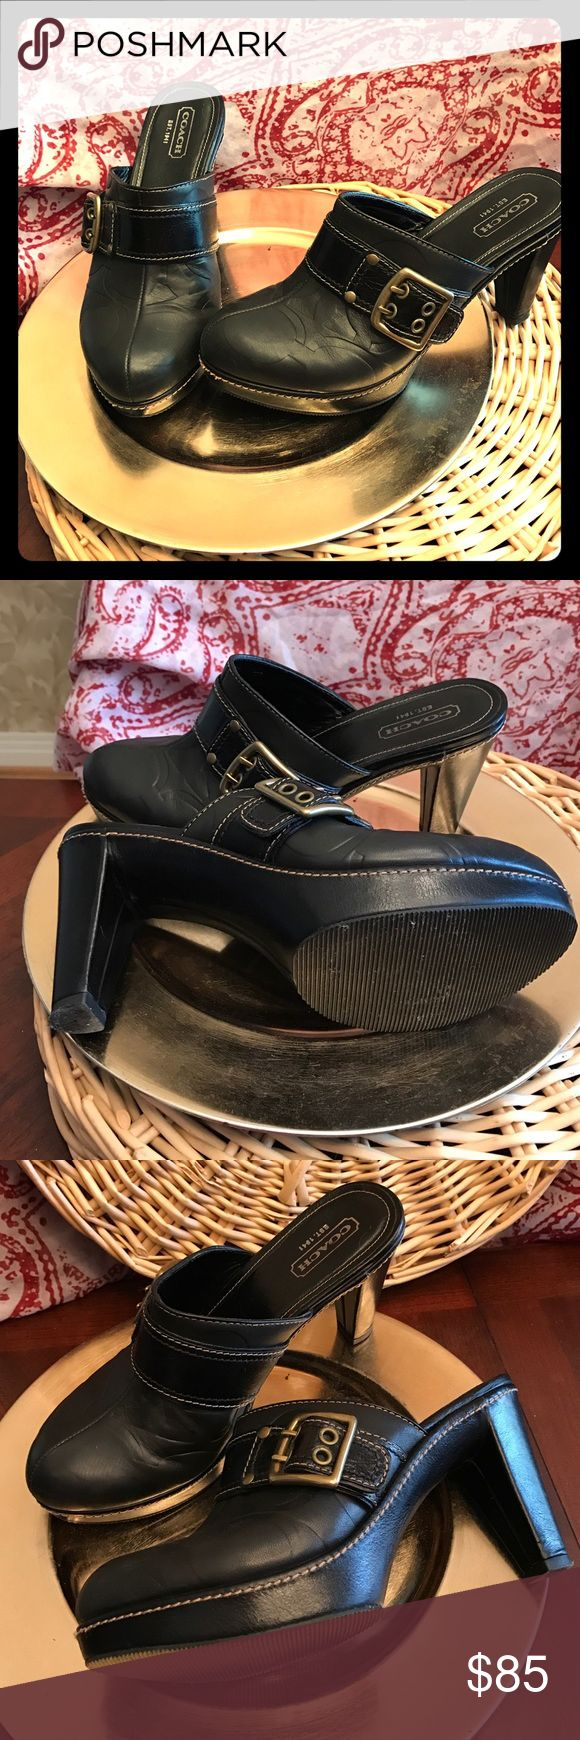 Coach High Heel Clogs Like new authentic Leather, Coach slip on clogs with 4 inch heel. No flaws. Coach Shoes Mules & Clogs